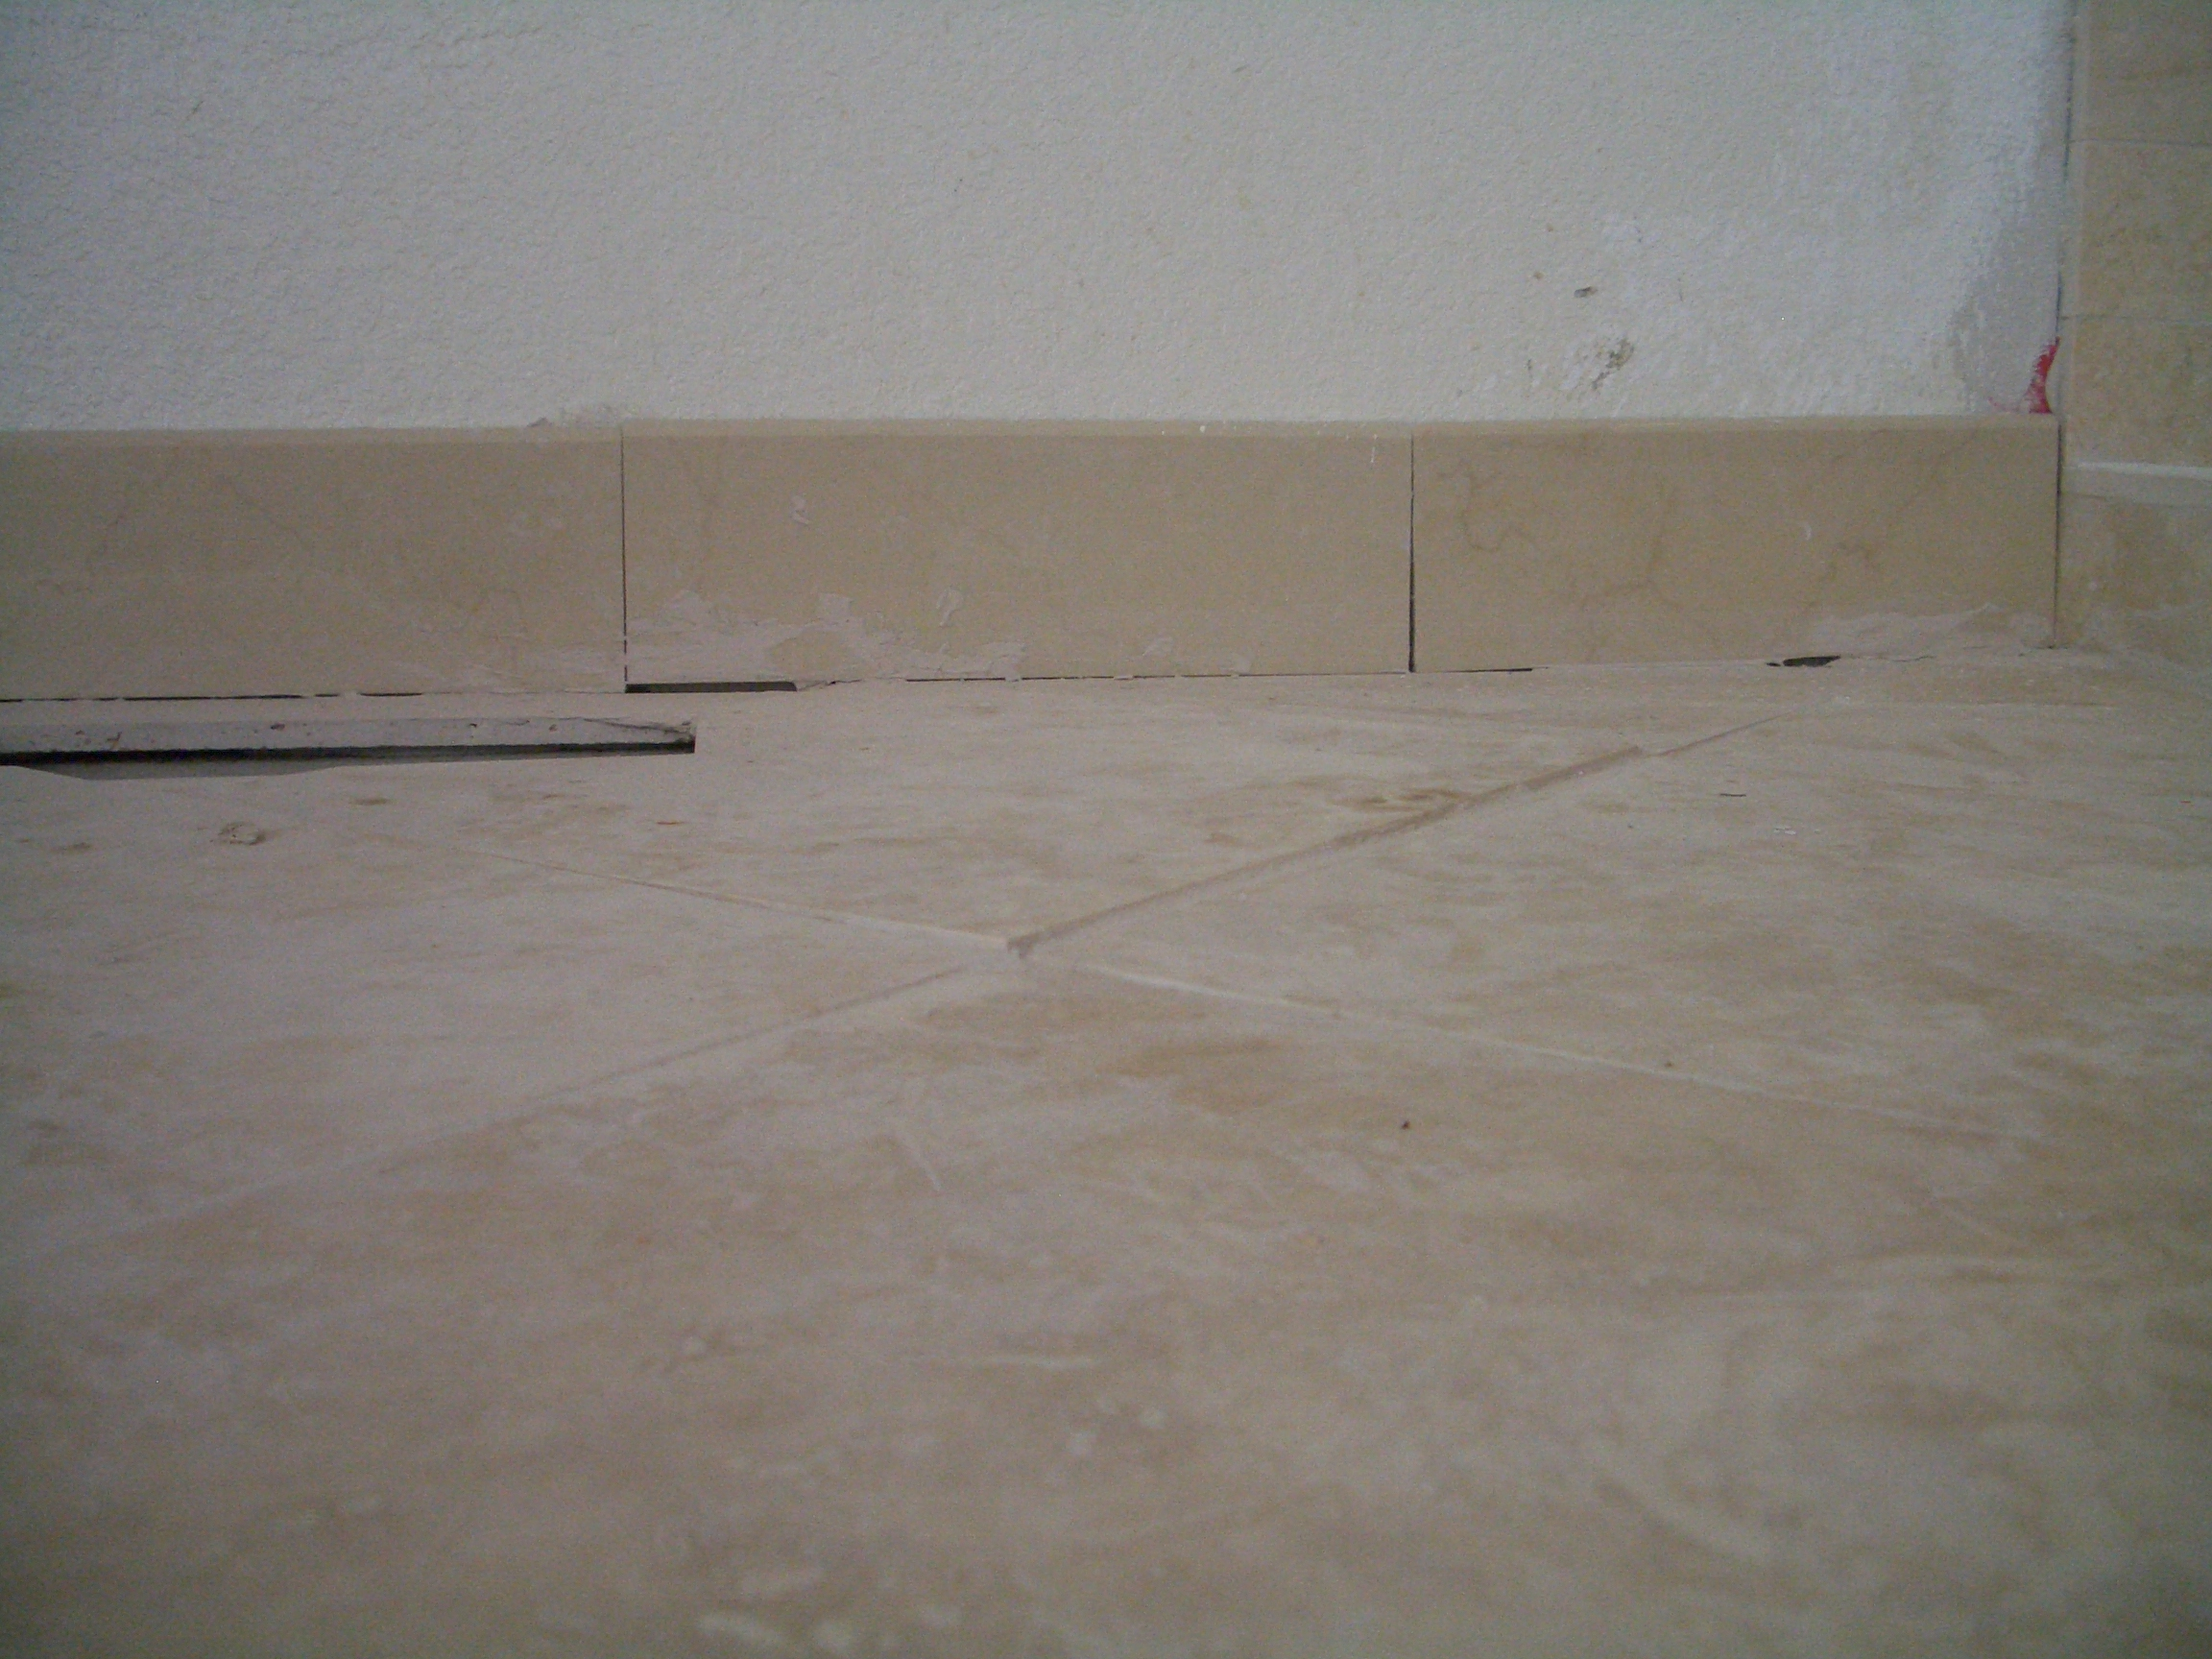 Tile floor without grout lines